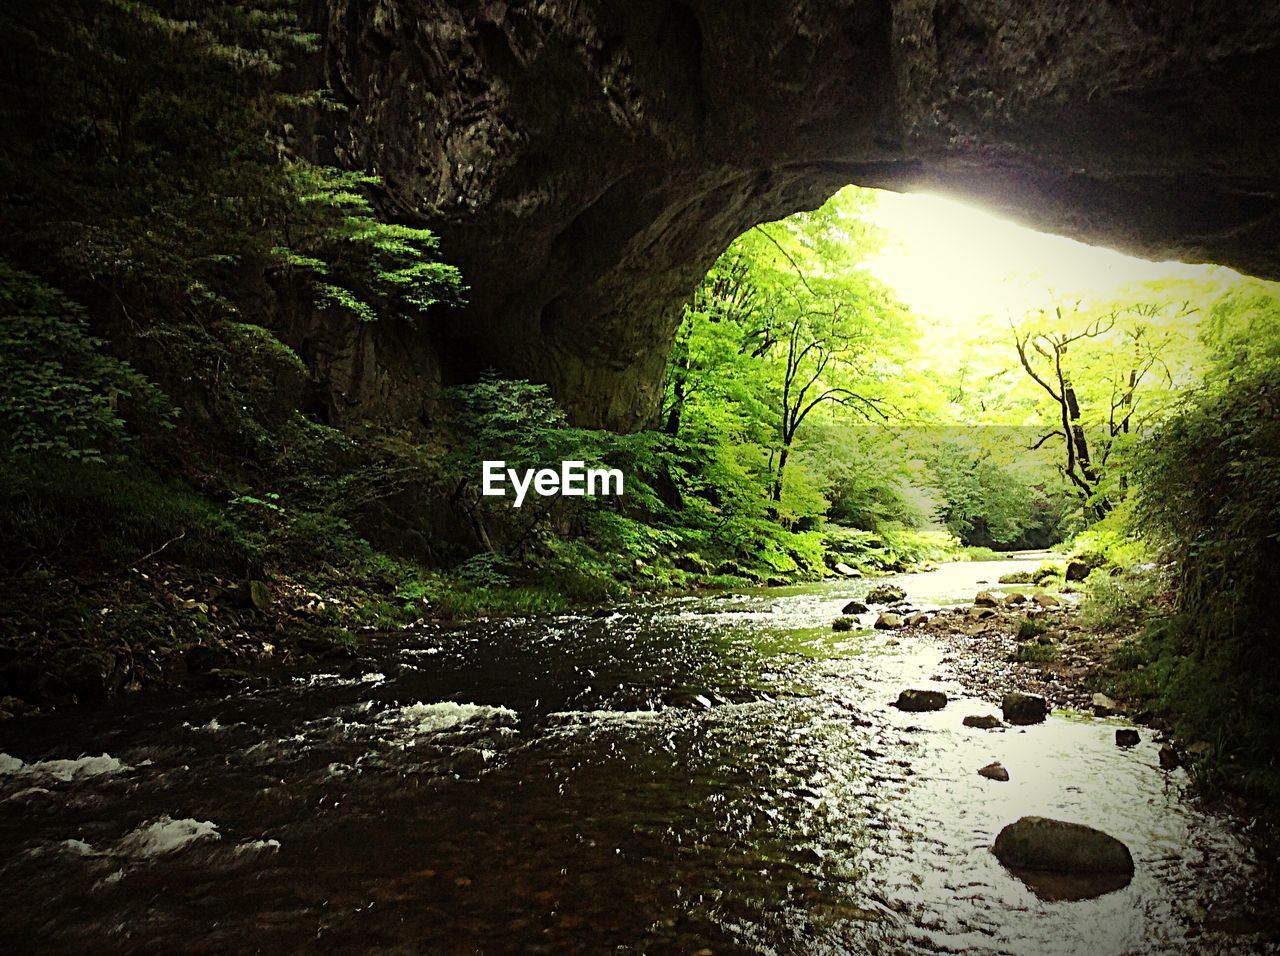 tranquility, nature, rock - object, beauty in nature, scenics, no people, forest, day, landscape, tree, tranquil scene, river, cave, travel destinations, outdoors, water